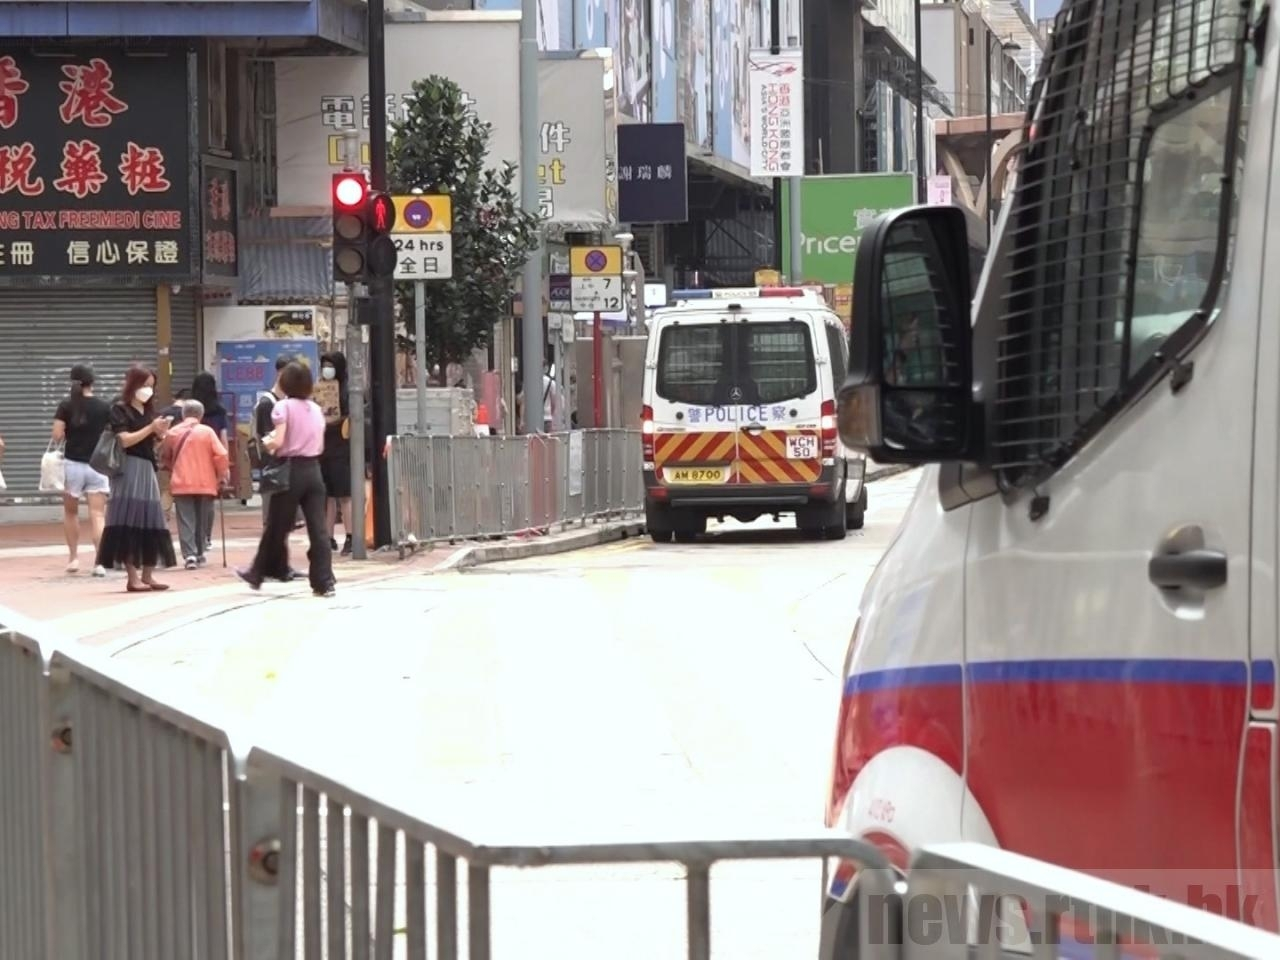 Police are on standby outside the Sogo department store in Causeway Bay where a man allegedly stabbed an officer and killed himself. Photo: RTHK